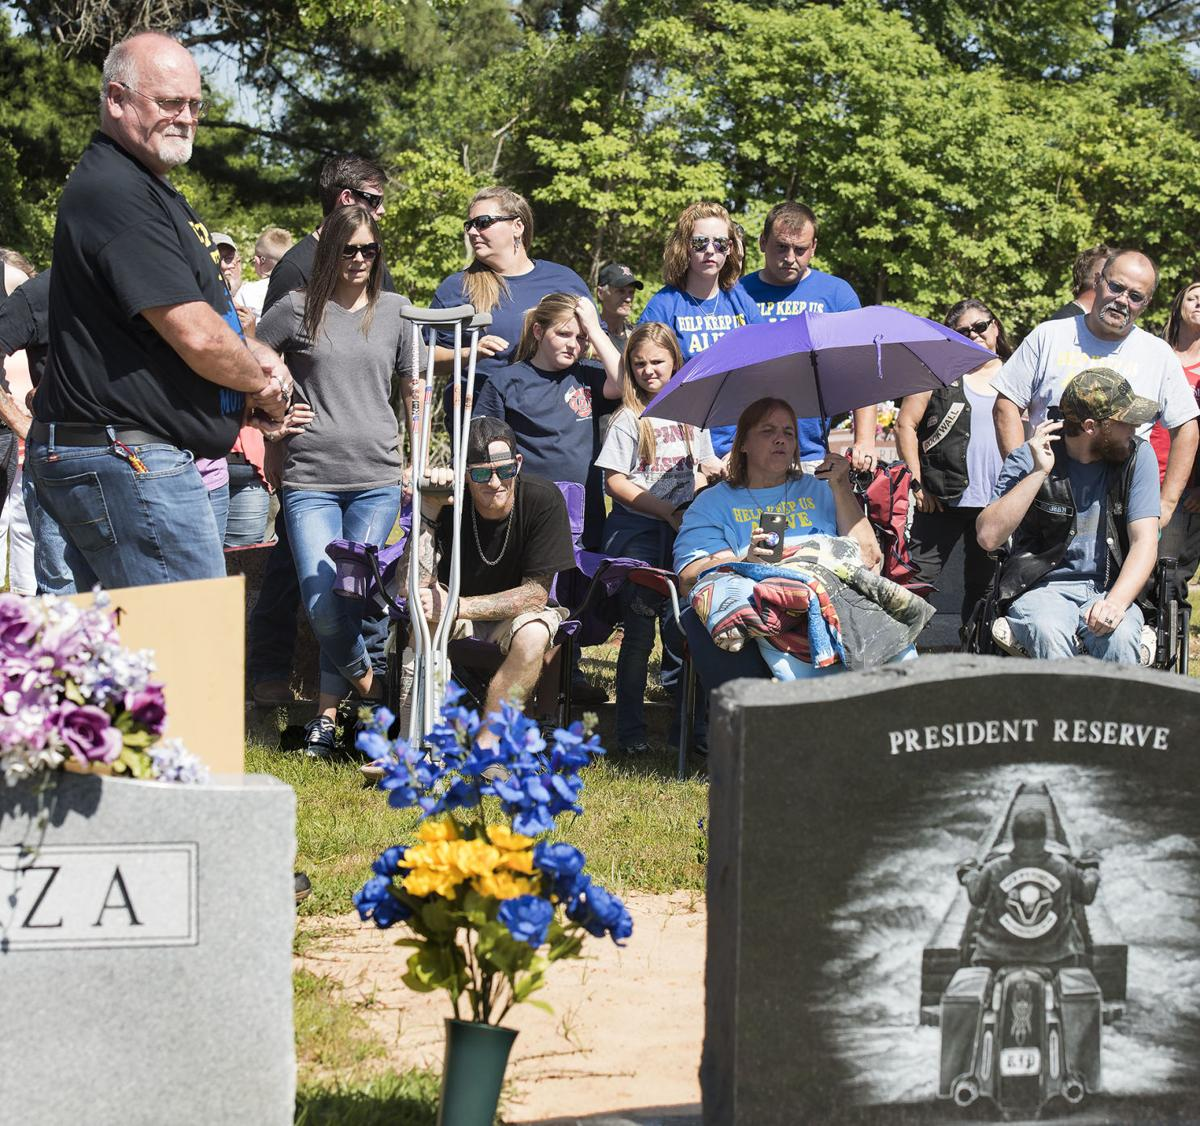 September Memorial Ride To Honor Bad Decisions Motorcycle Club